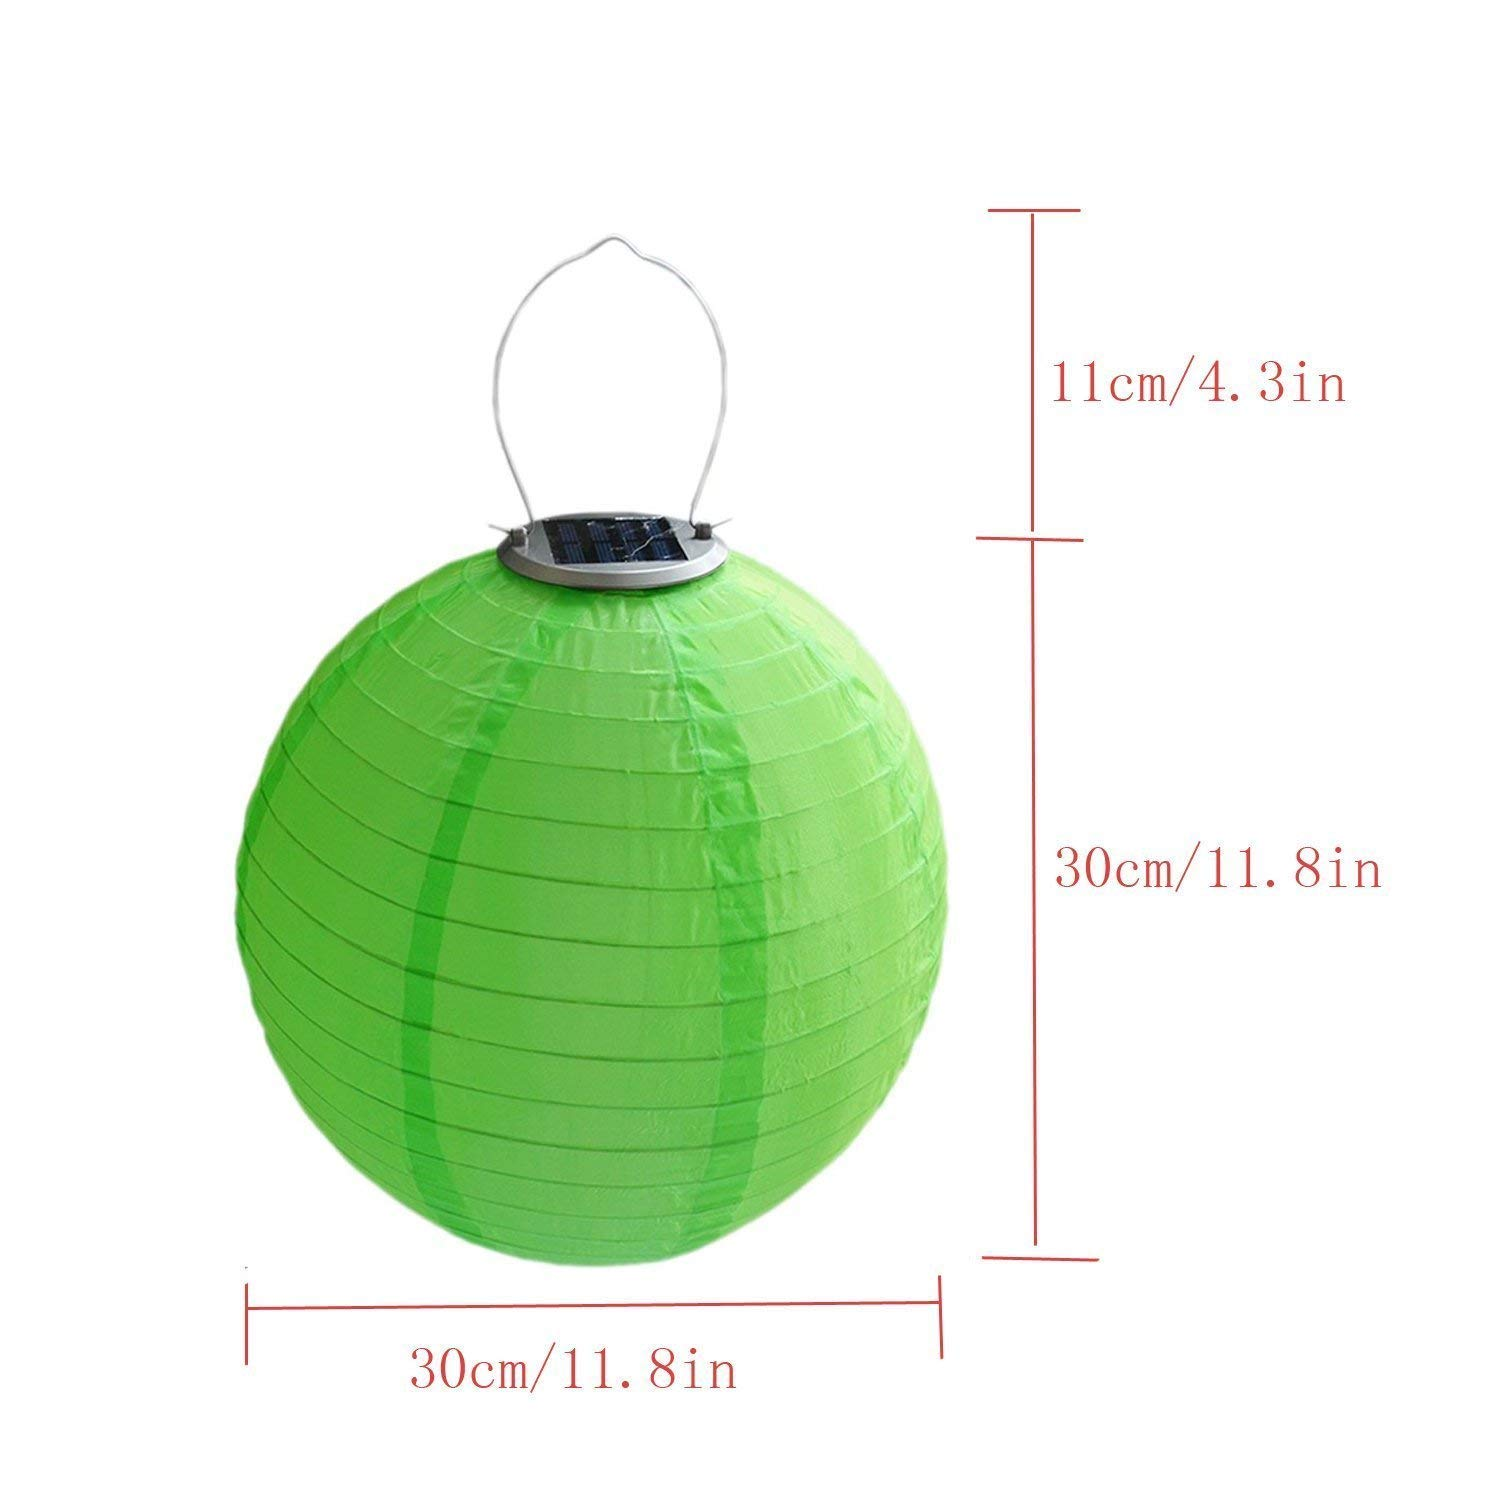 RioRand Chinese waterproof outdoor garden solar hanging LED light lanterns (Red/green/blue/yellow) by RioRand (Image #2)